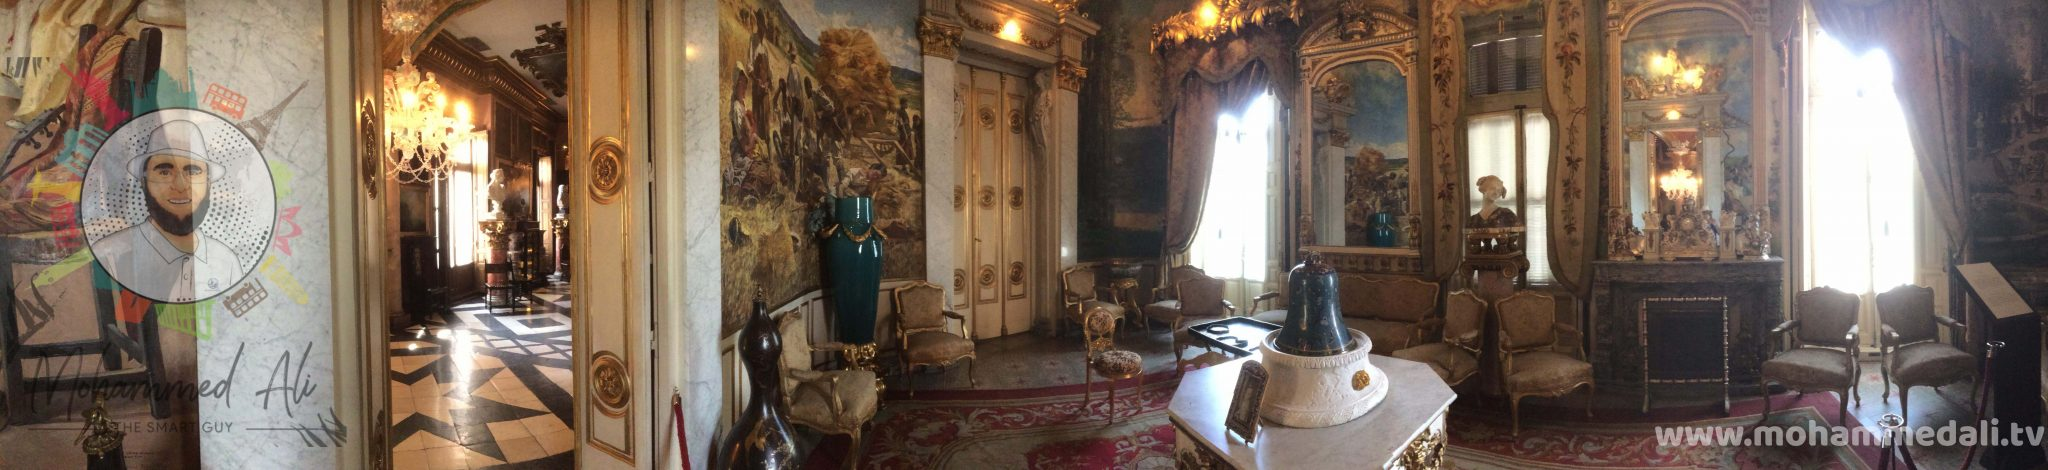 Panoramic view of the Empire Room in Cerralbo Museum